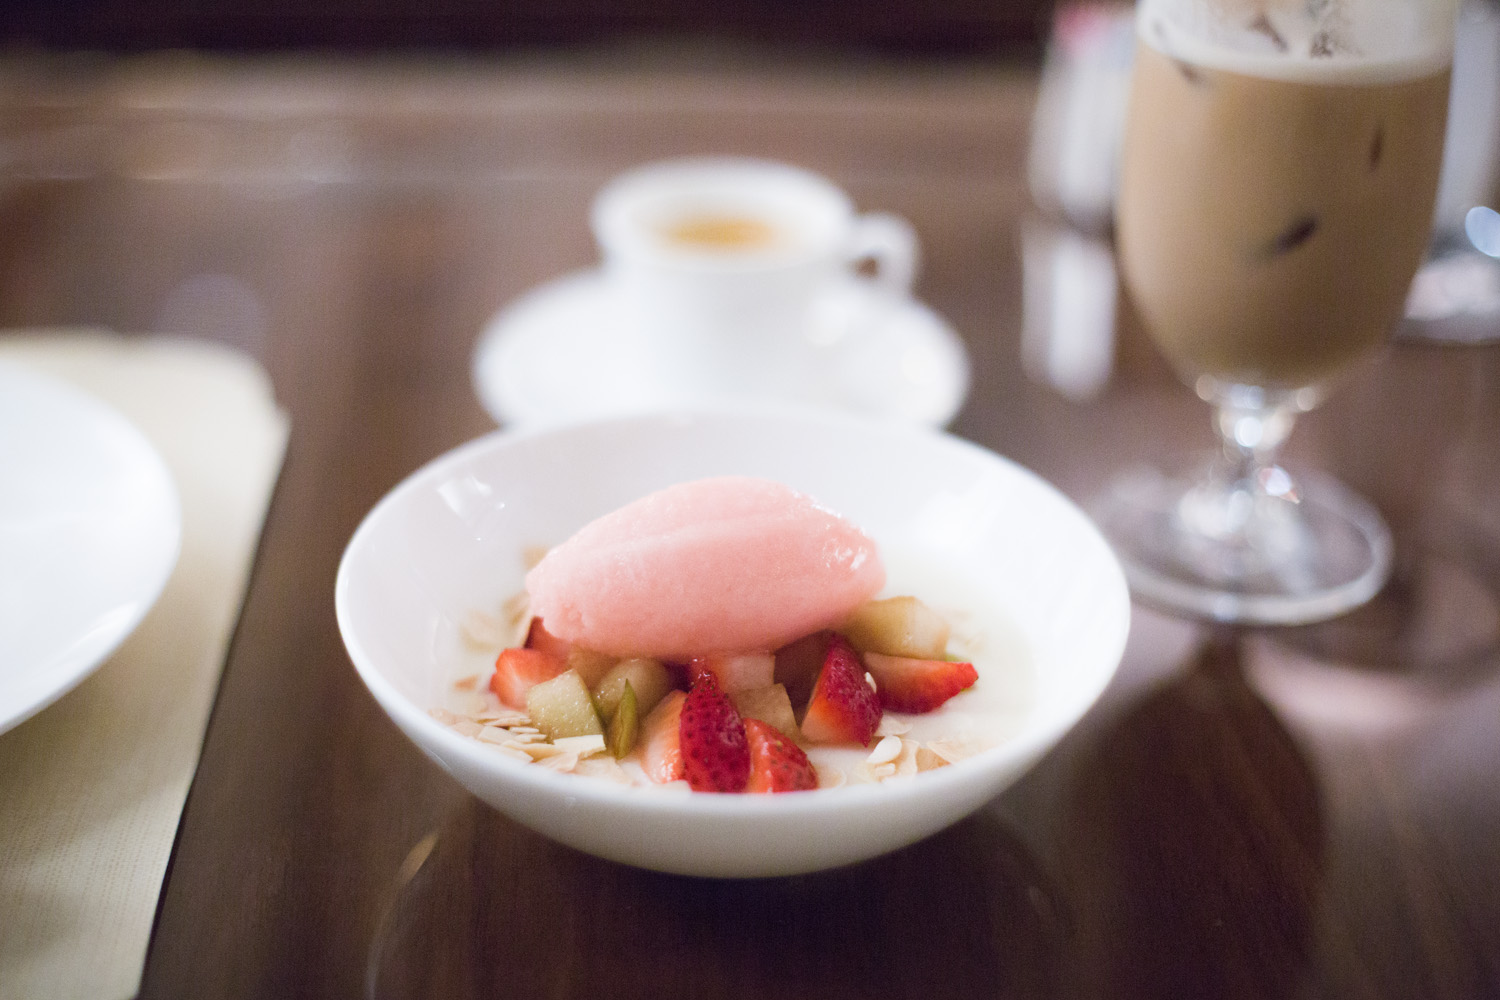 Blanc Manger with Almond milk, plums, strawberry, watermelon sorbet